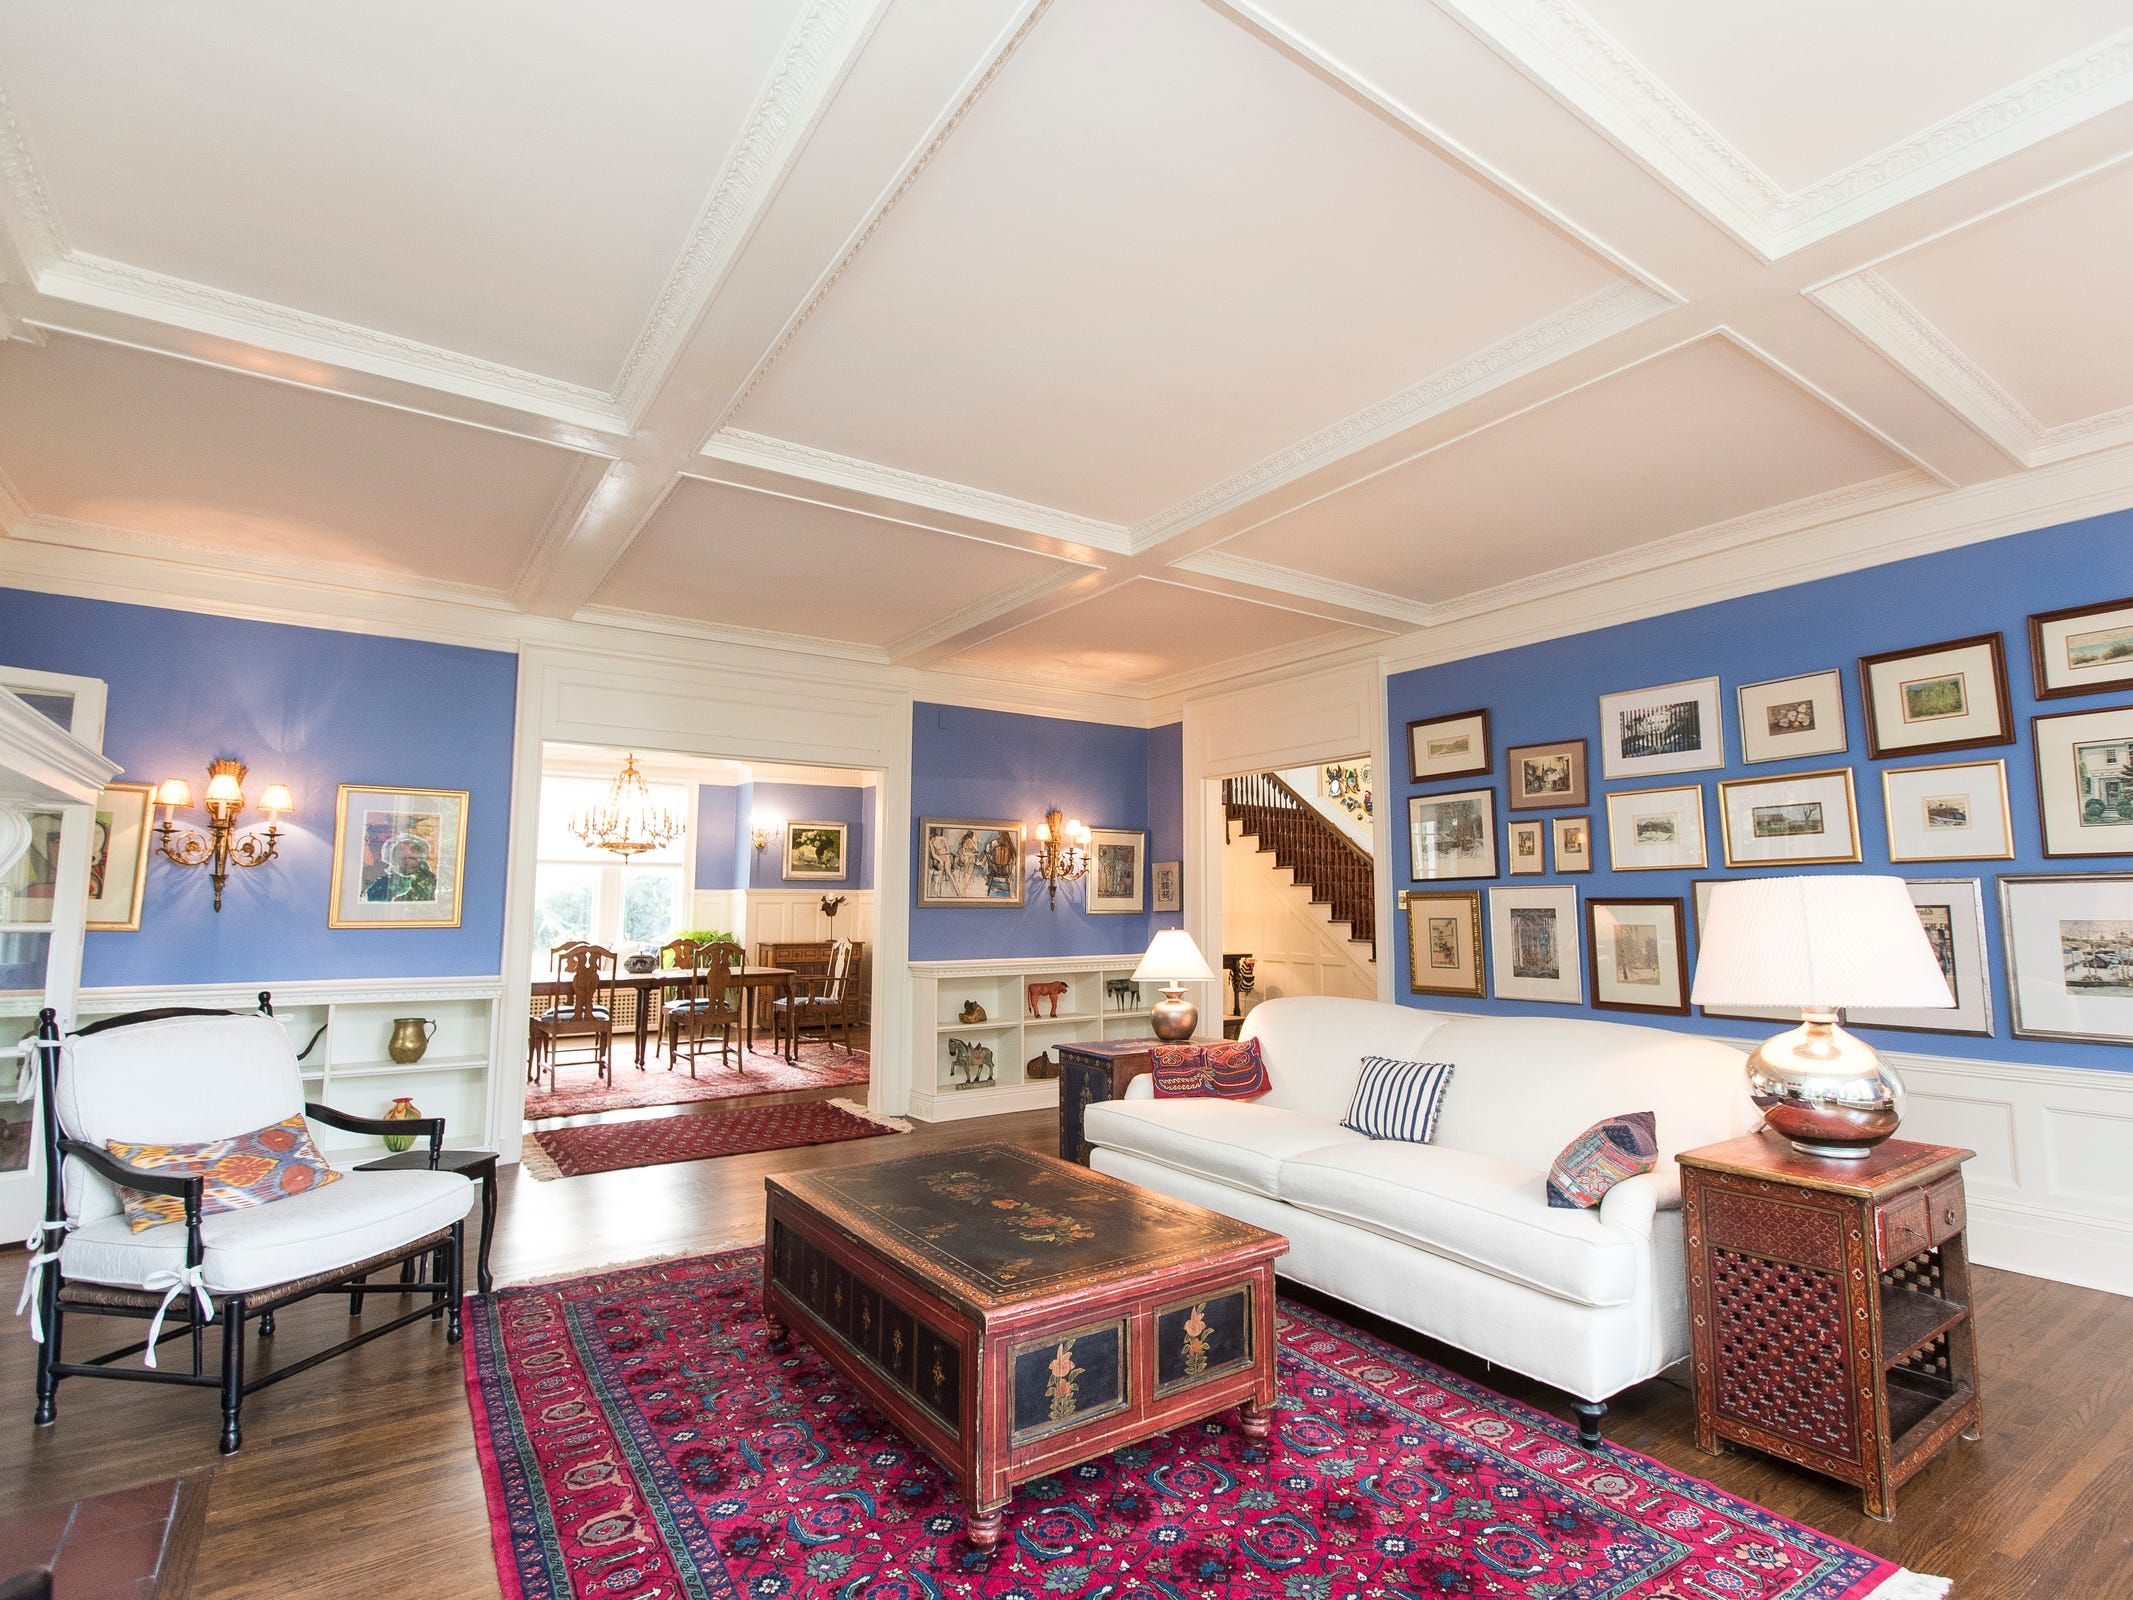 Massive Arts and Crafts woodwork is all painted glossy white and mixed with vivid colors like the lapis blue in the living room and the aquamarine in the sunroom behind. Many red-hued Persian style rugs add even more color pop